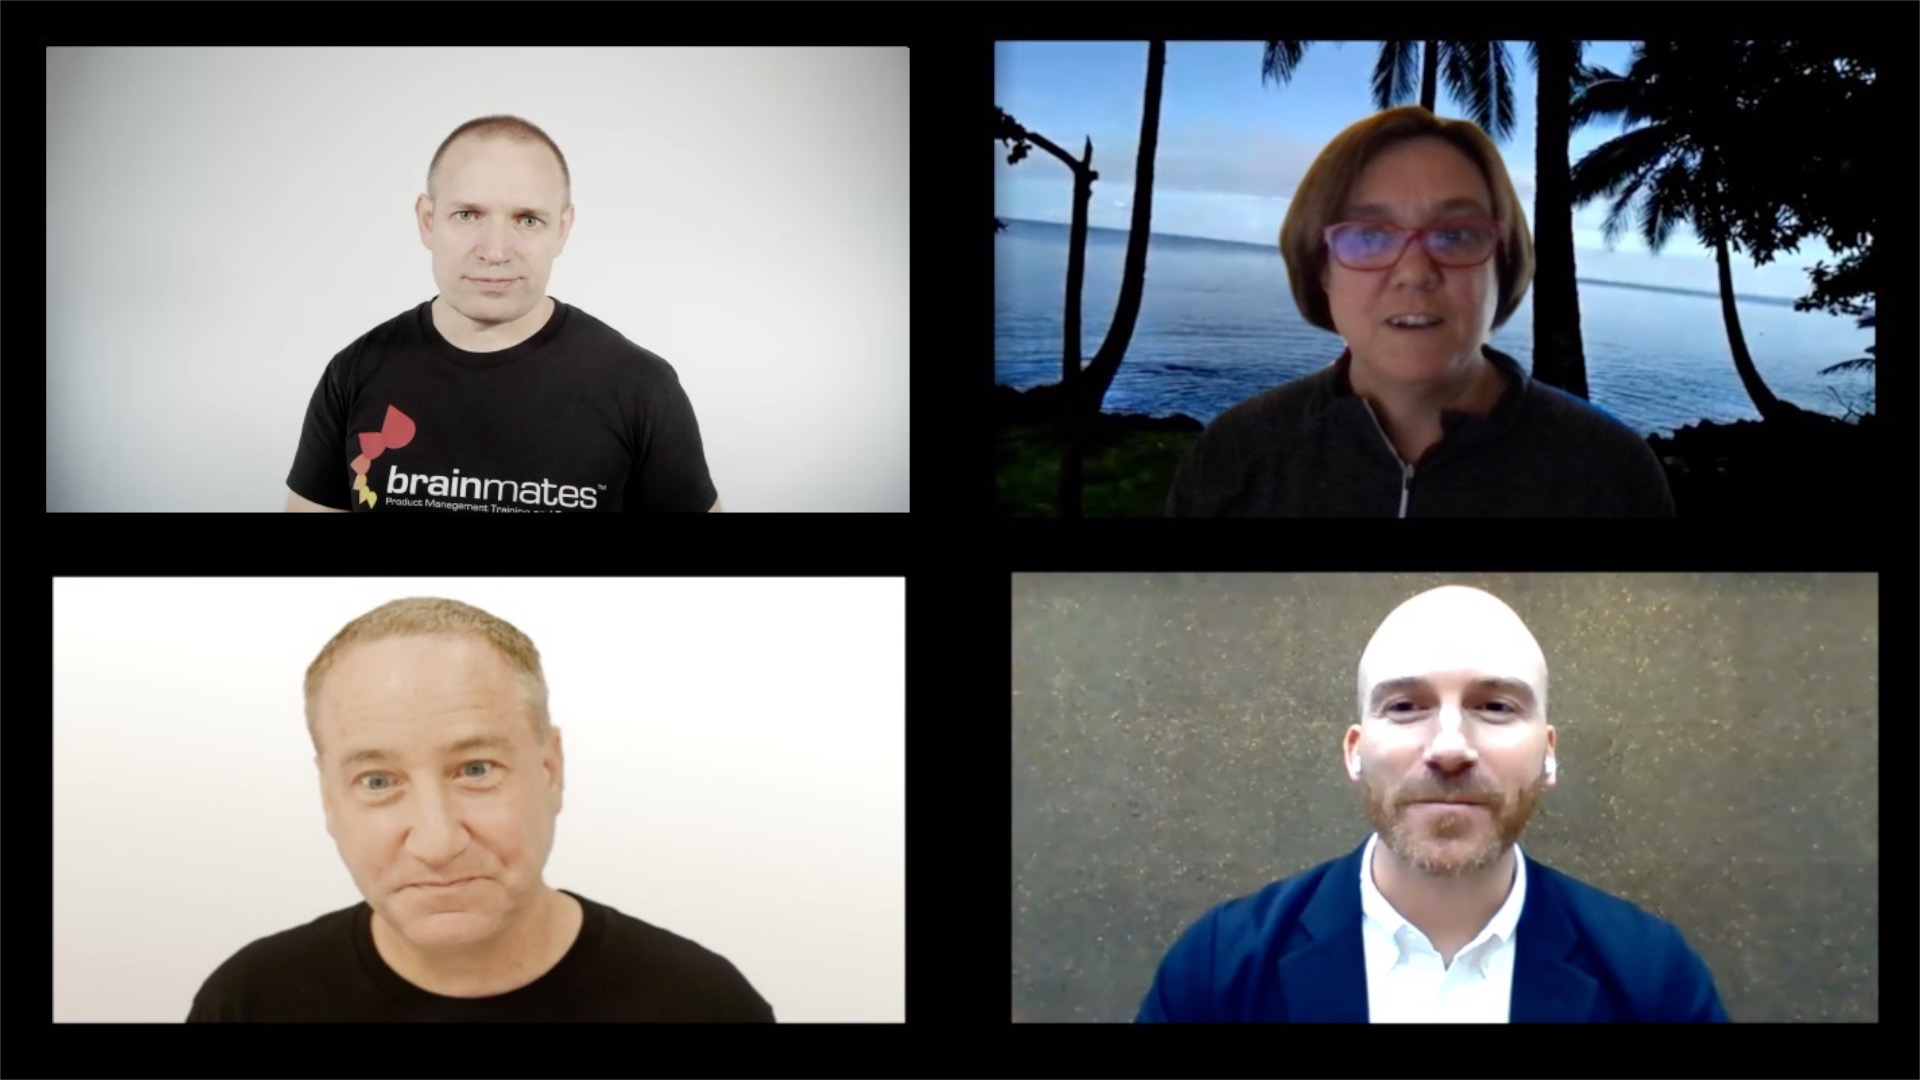 The Future of Product Management: Product Leaders Share Their Thoughts